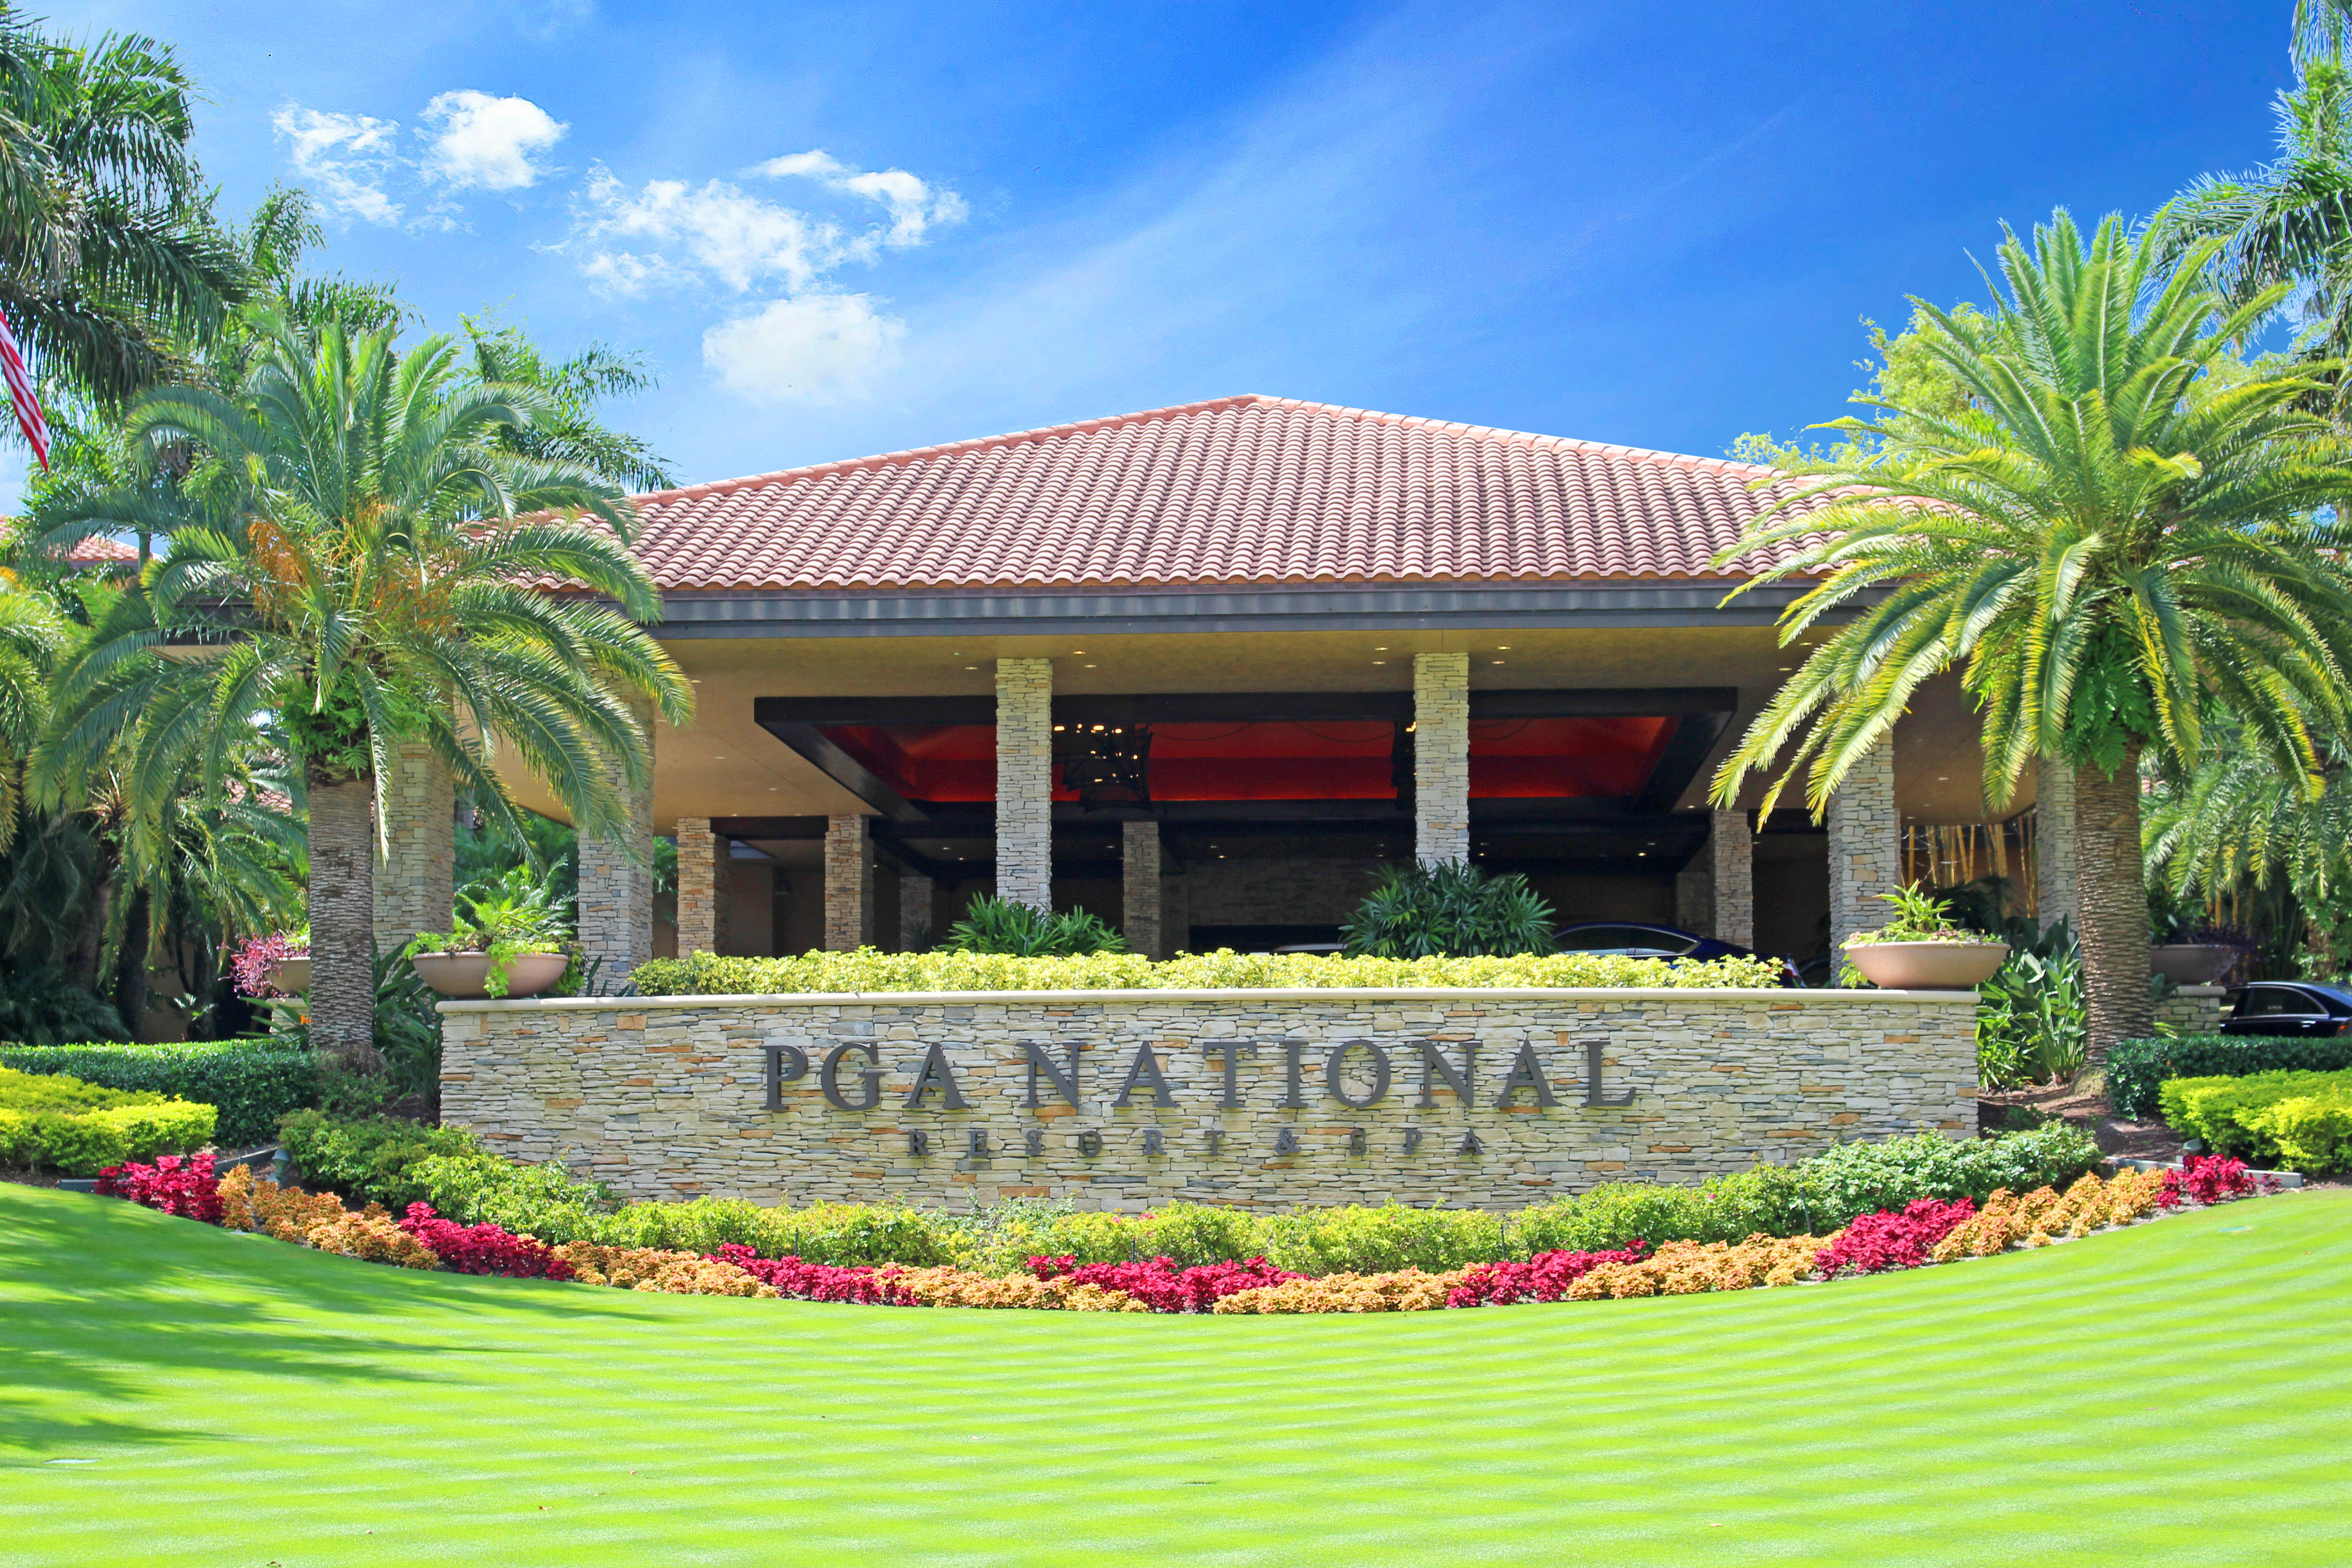 14 Wycliff Road, Palm Beach Gardens Was Sold By Top Agents in PGA National